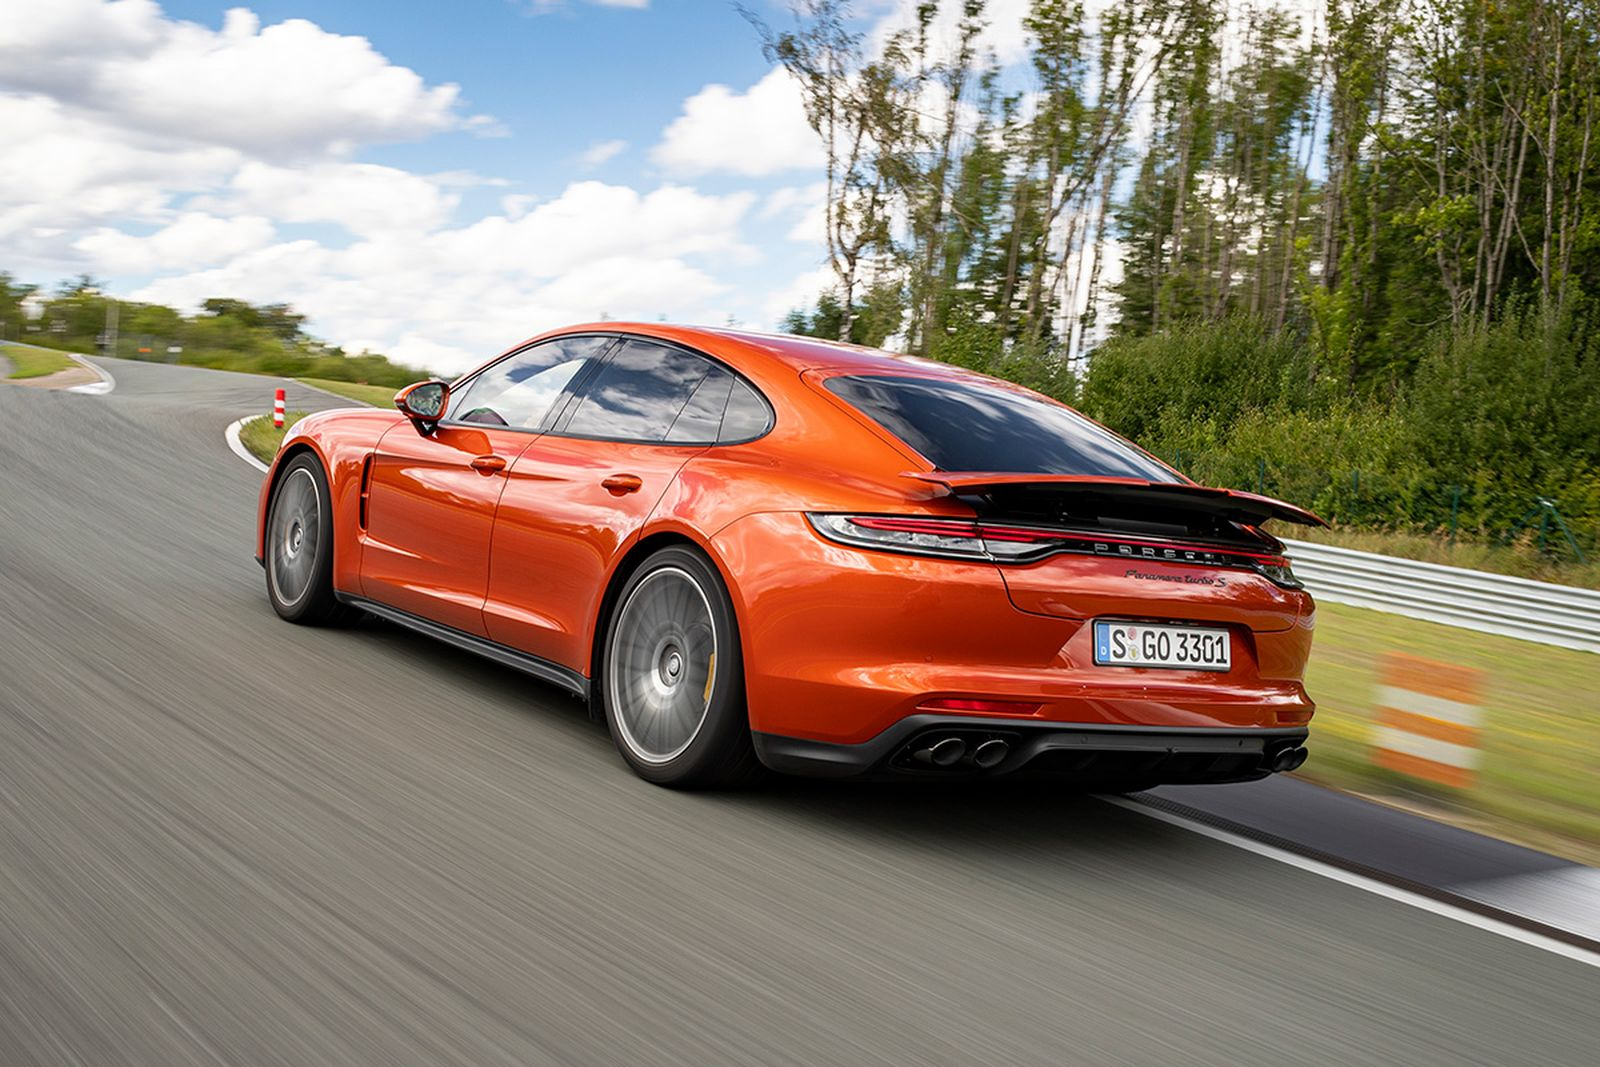 A flashy Papaya Metallic was the chosen launch color for the new Panamera Turbo S